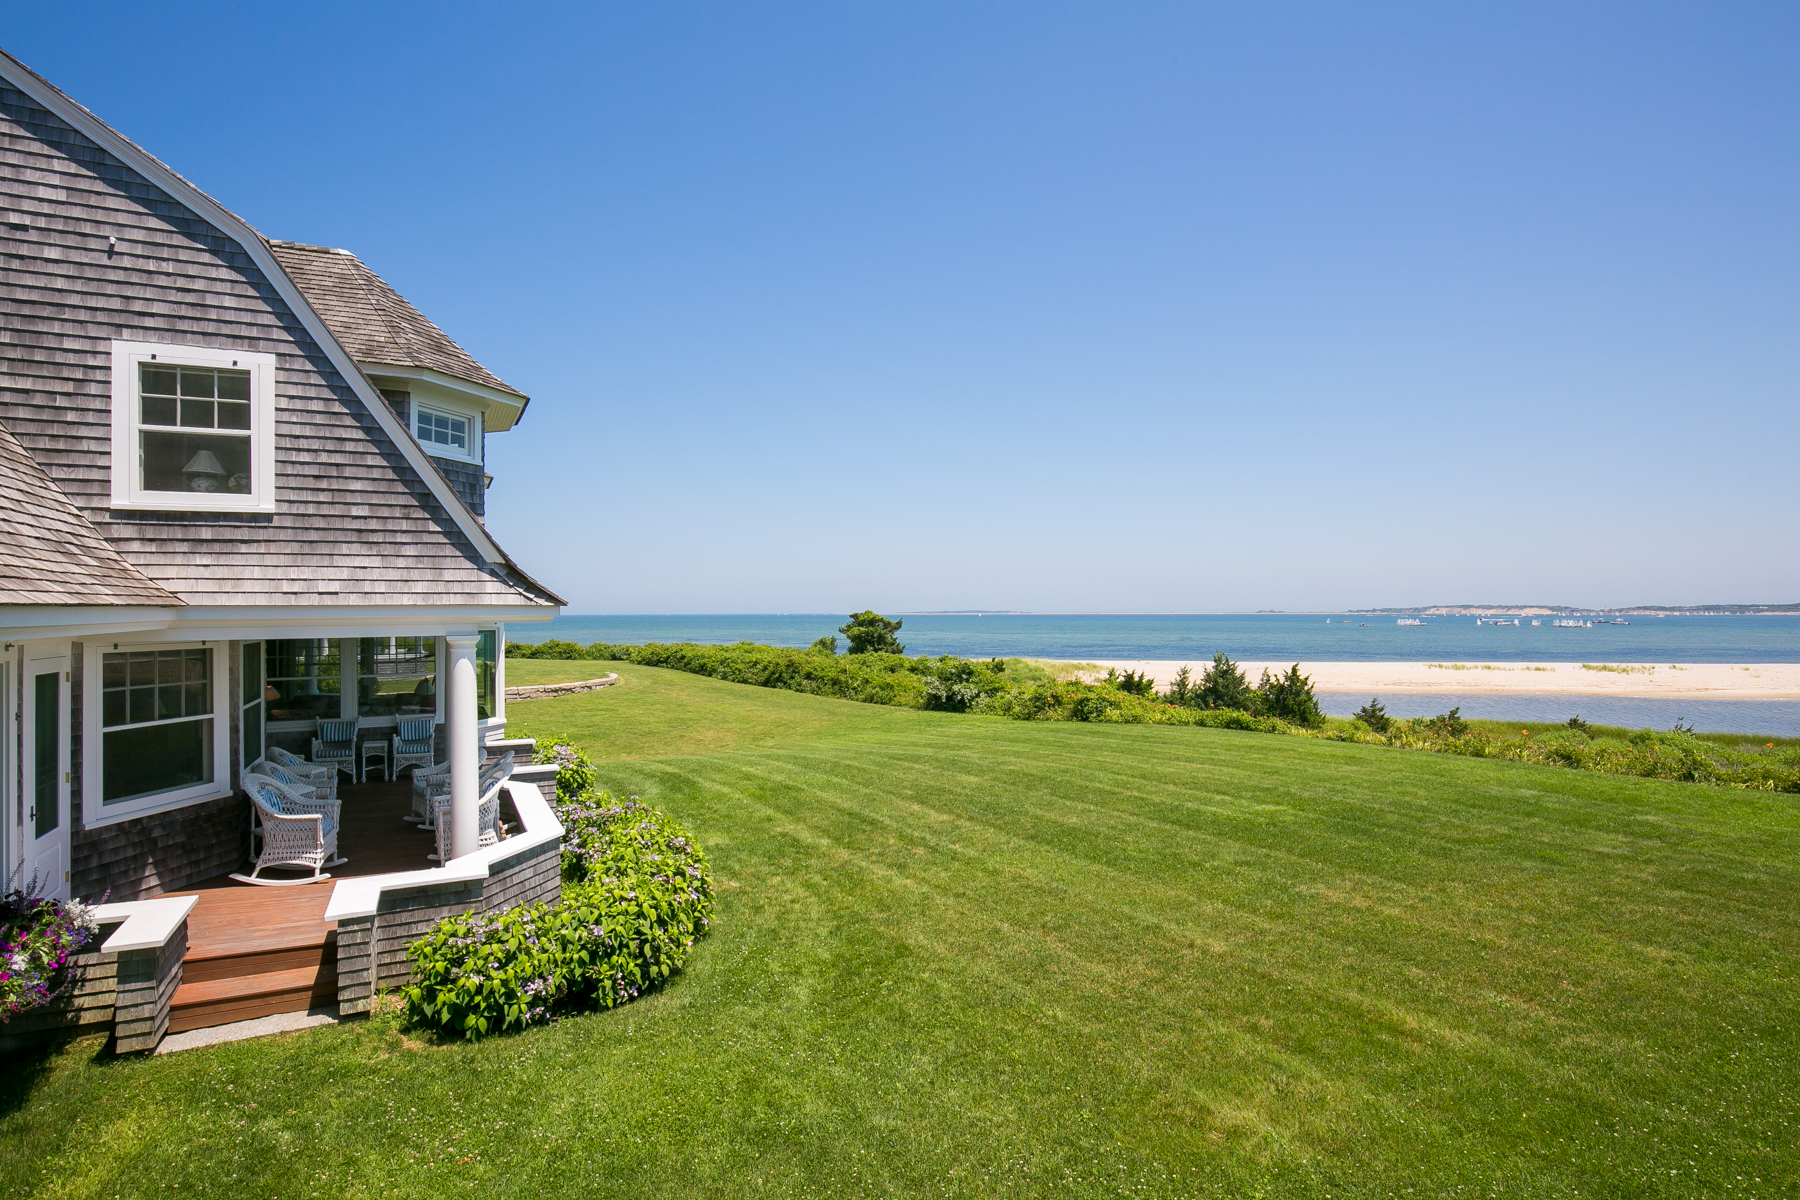 Villa per Vendita alle ore Edgartown Harbor Waterfront Estate 7 Starbuck Neck Road Edgartown, Massachusetts, 02539 Stati Uniti